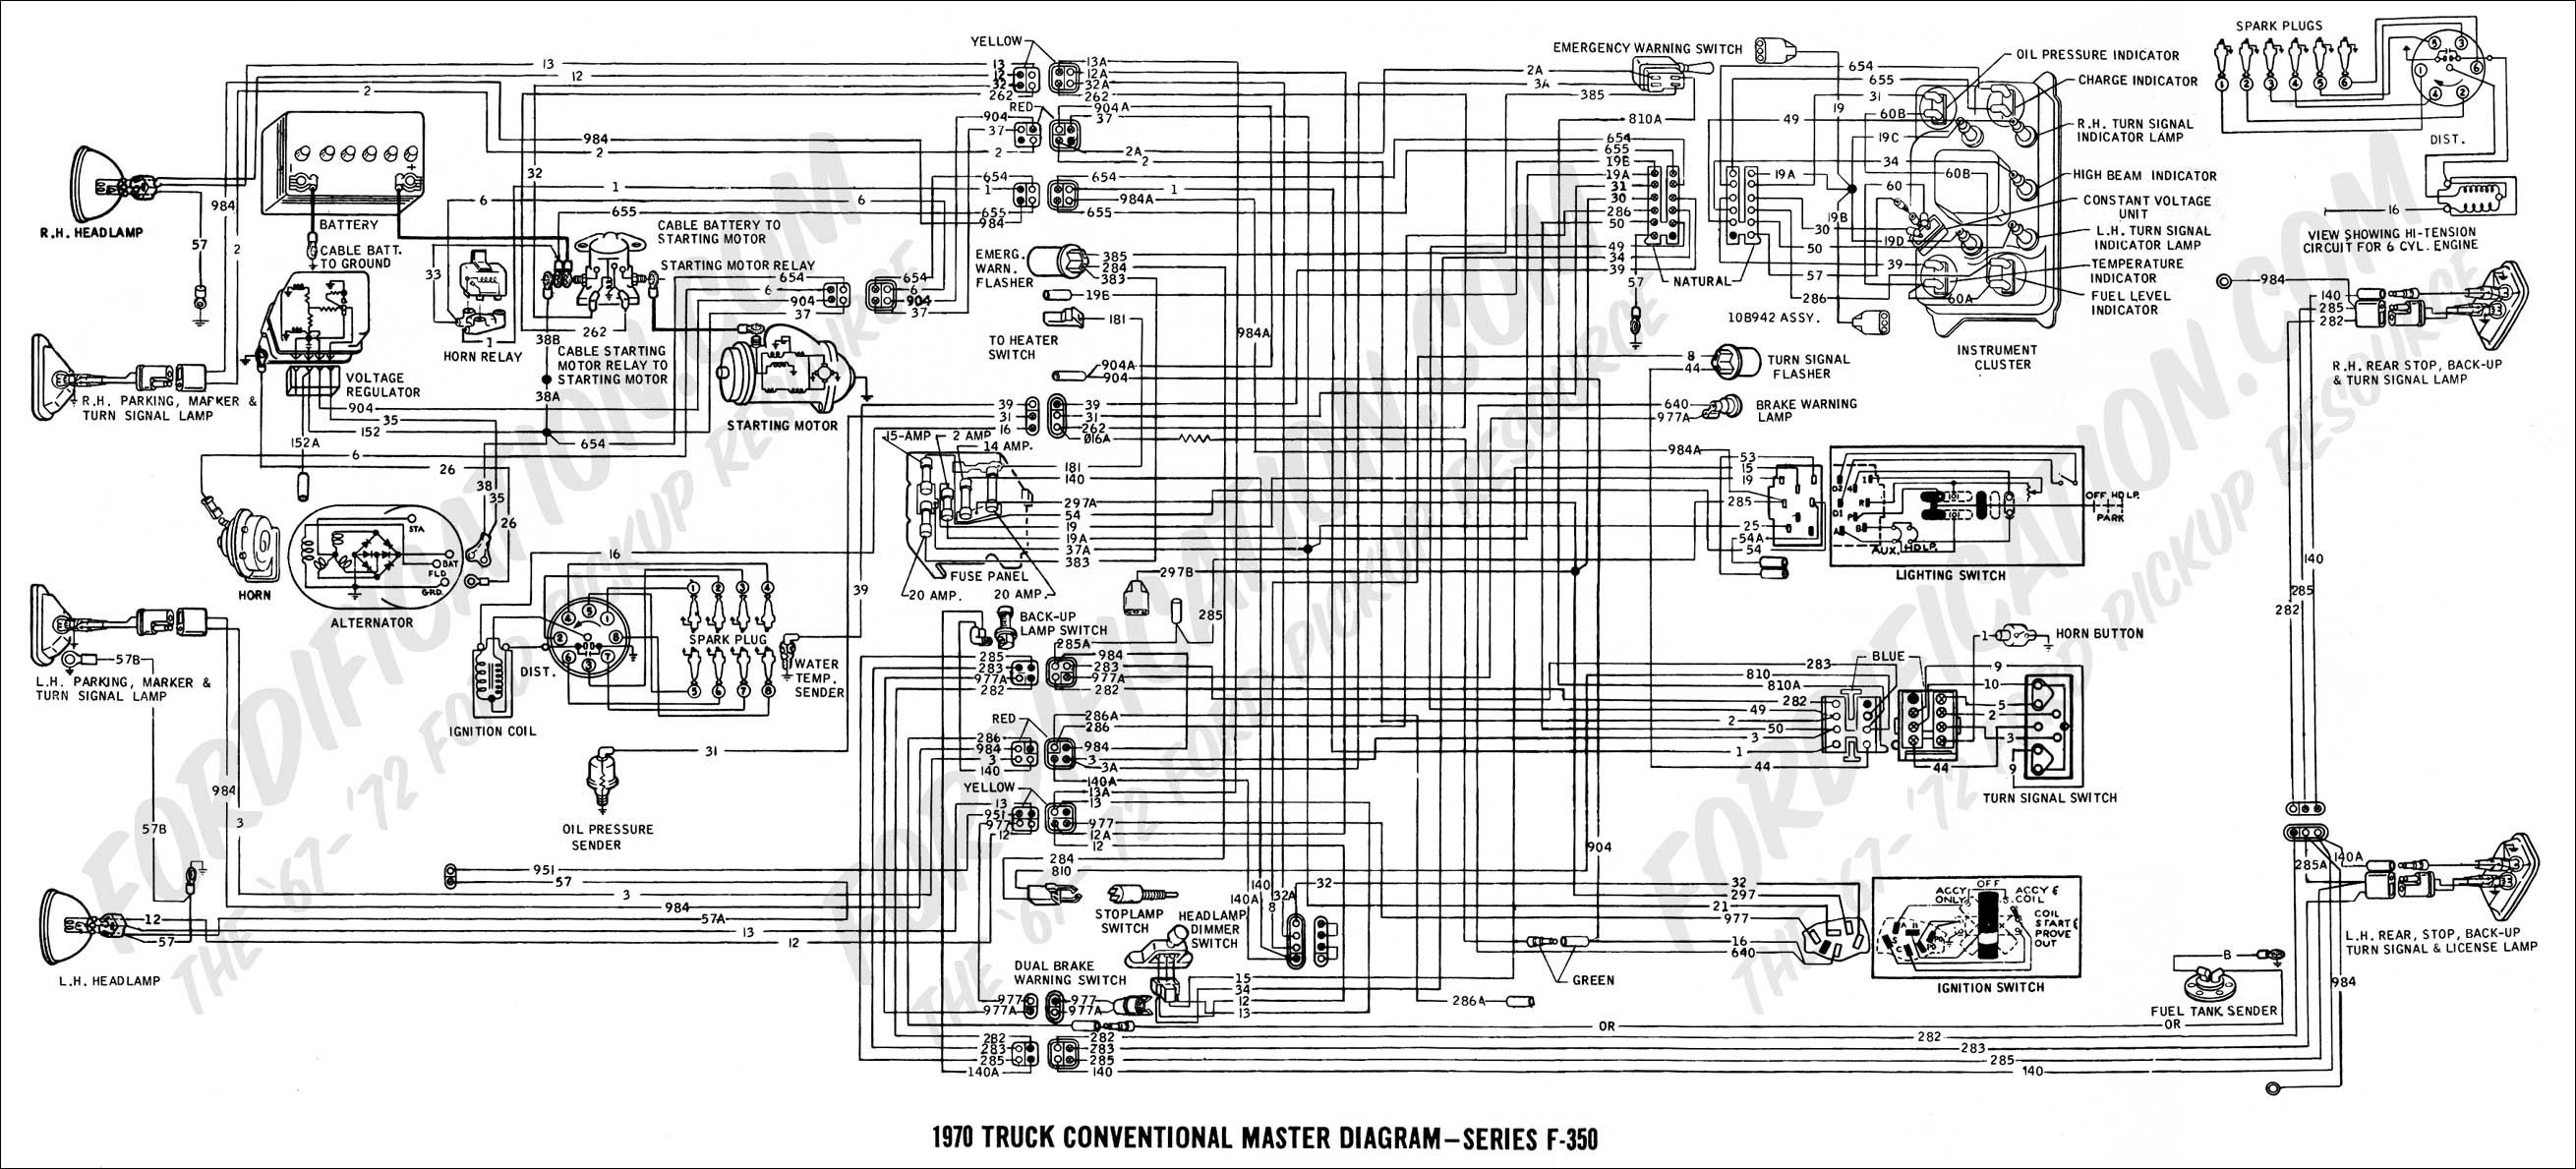 97 f150 trailer wiring diagram Collection-2007 f150 wiring diagram 2006 Ford  Ranger Wiring Diagram